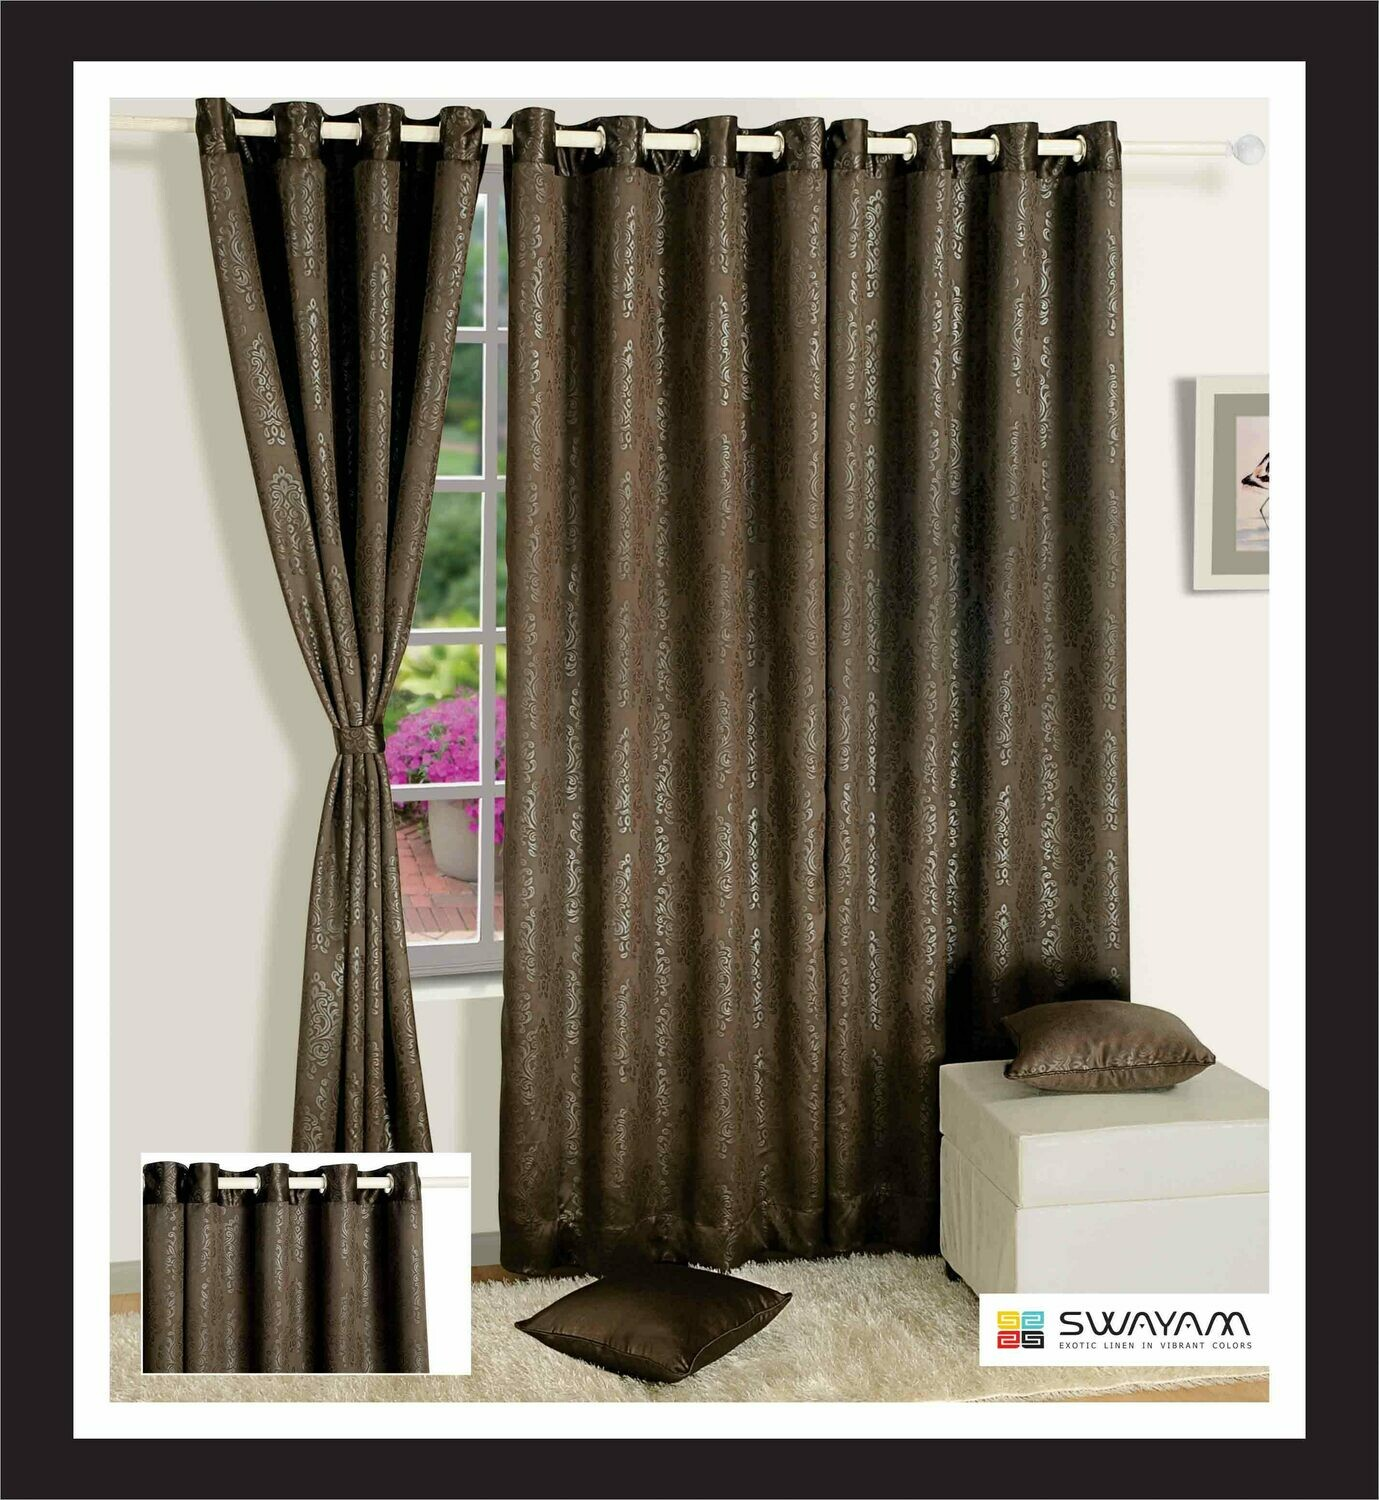 Swayam Choclate Brown Colour Paisley J&B Blackout Eyelet Curtain for Window